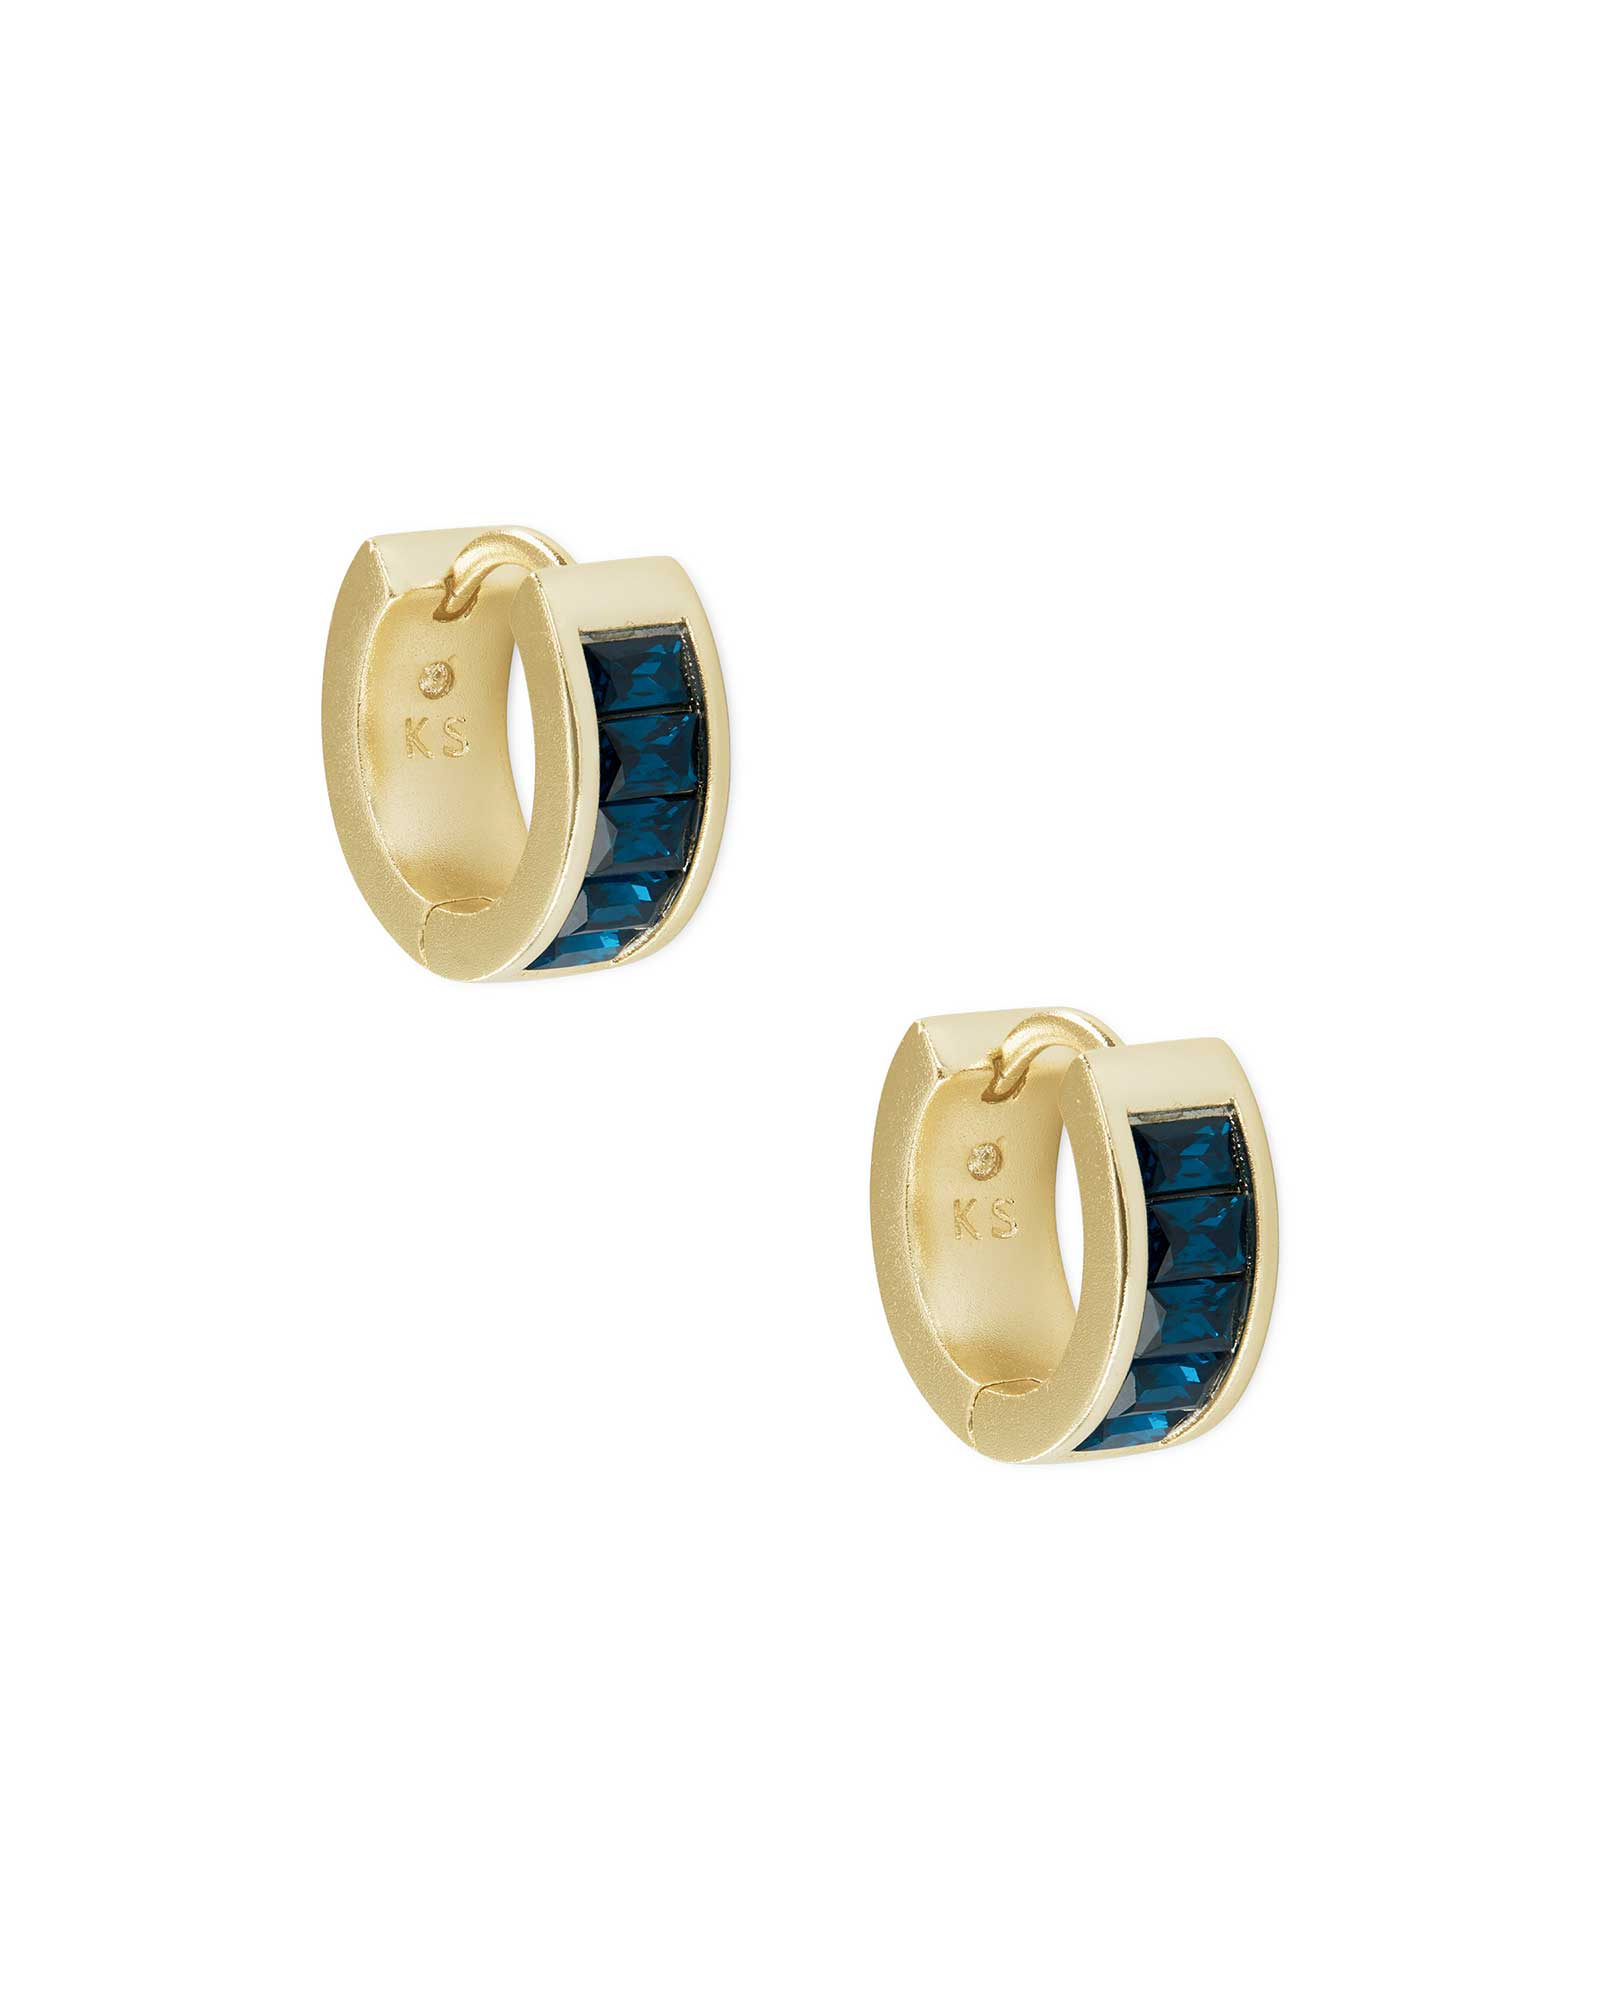 Jack Gold Huggie Earrings in Peacock Blue Crystal